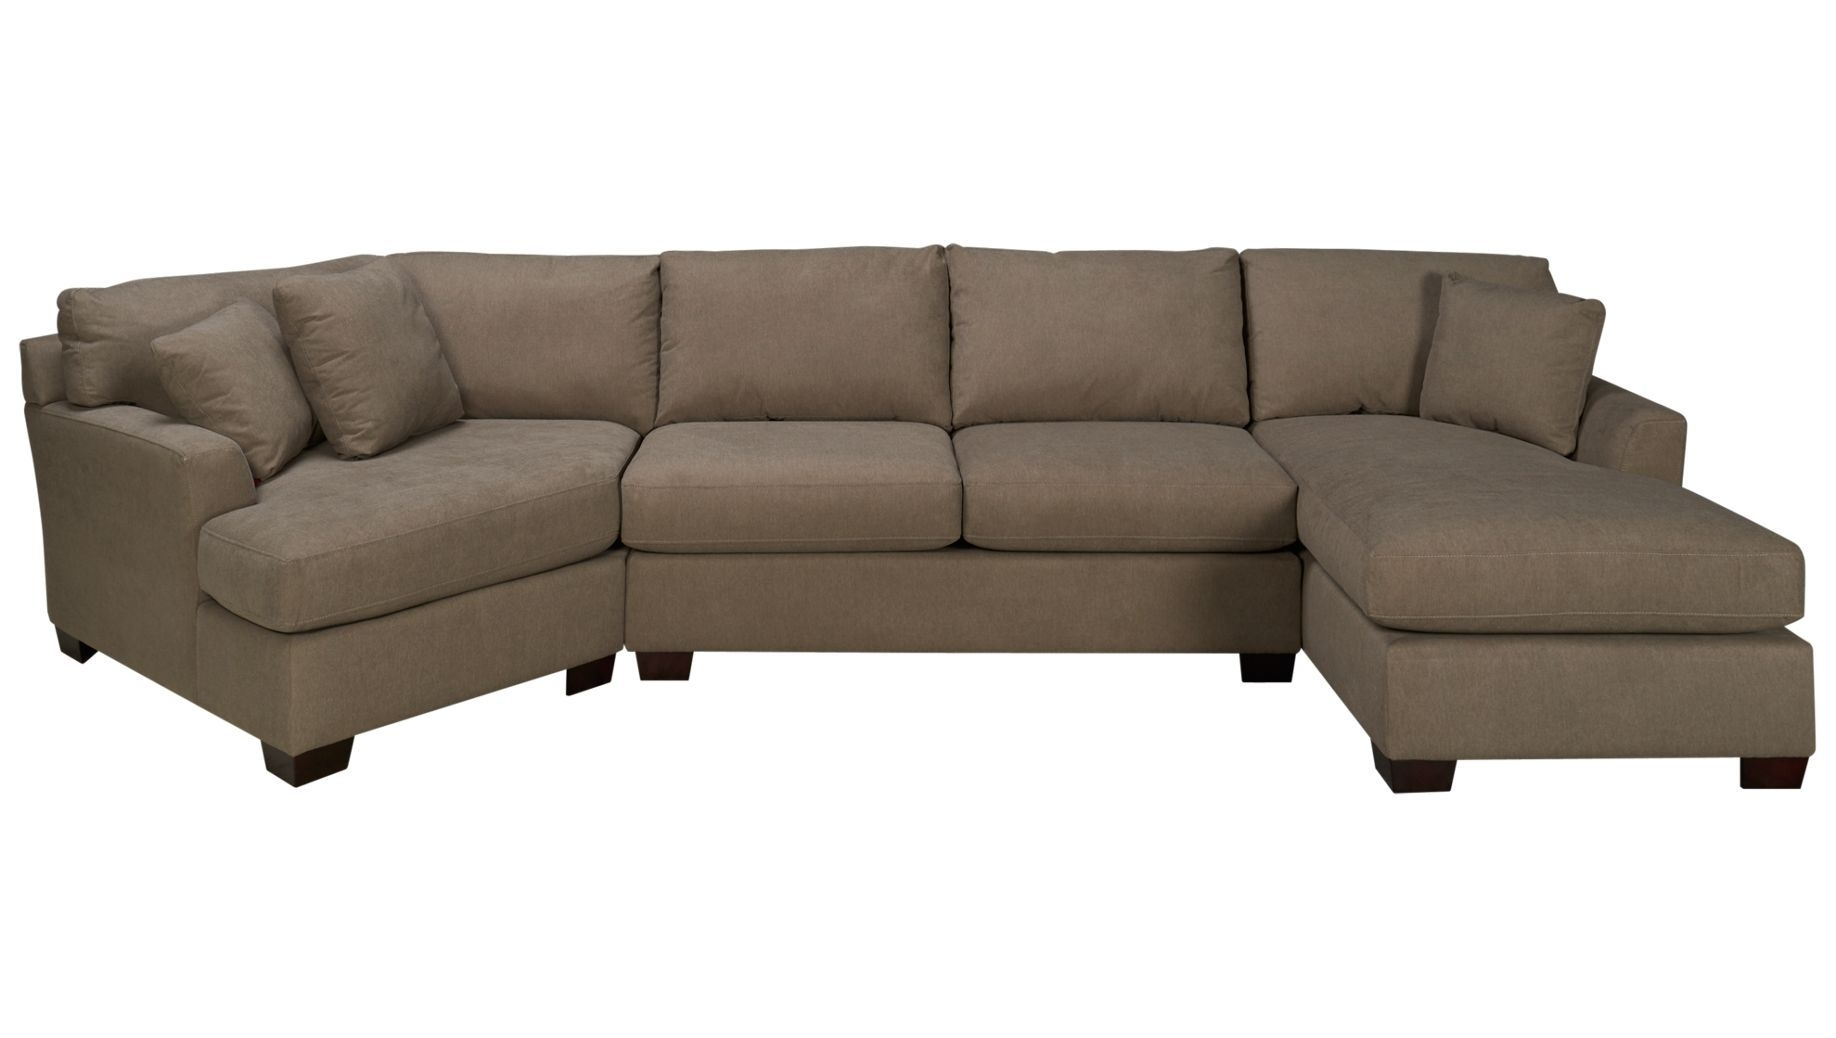 Max Home Jessica Jessica 3 Piece Sectional – Jordan's Furniture Within Jordans Sectional Sofas (View 7 of 10)